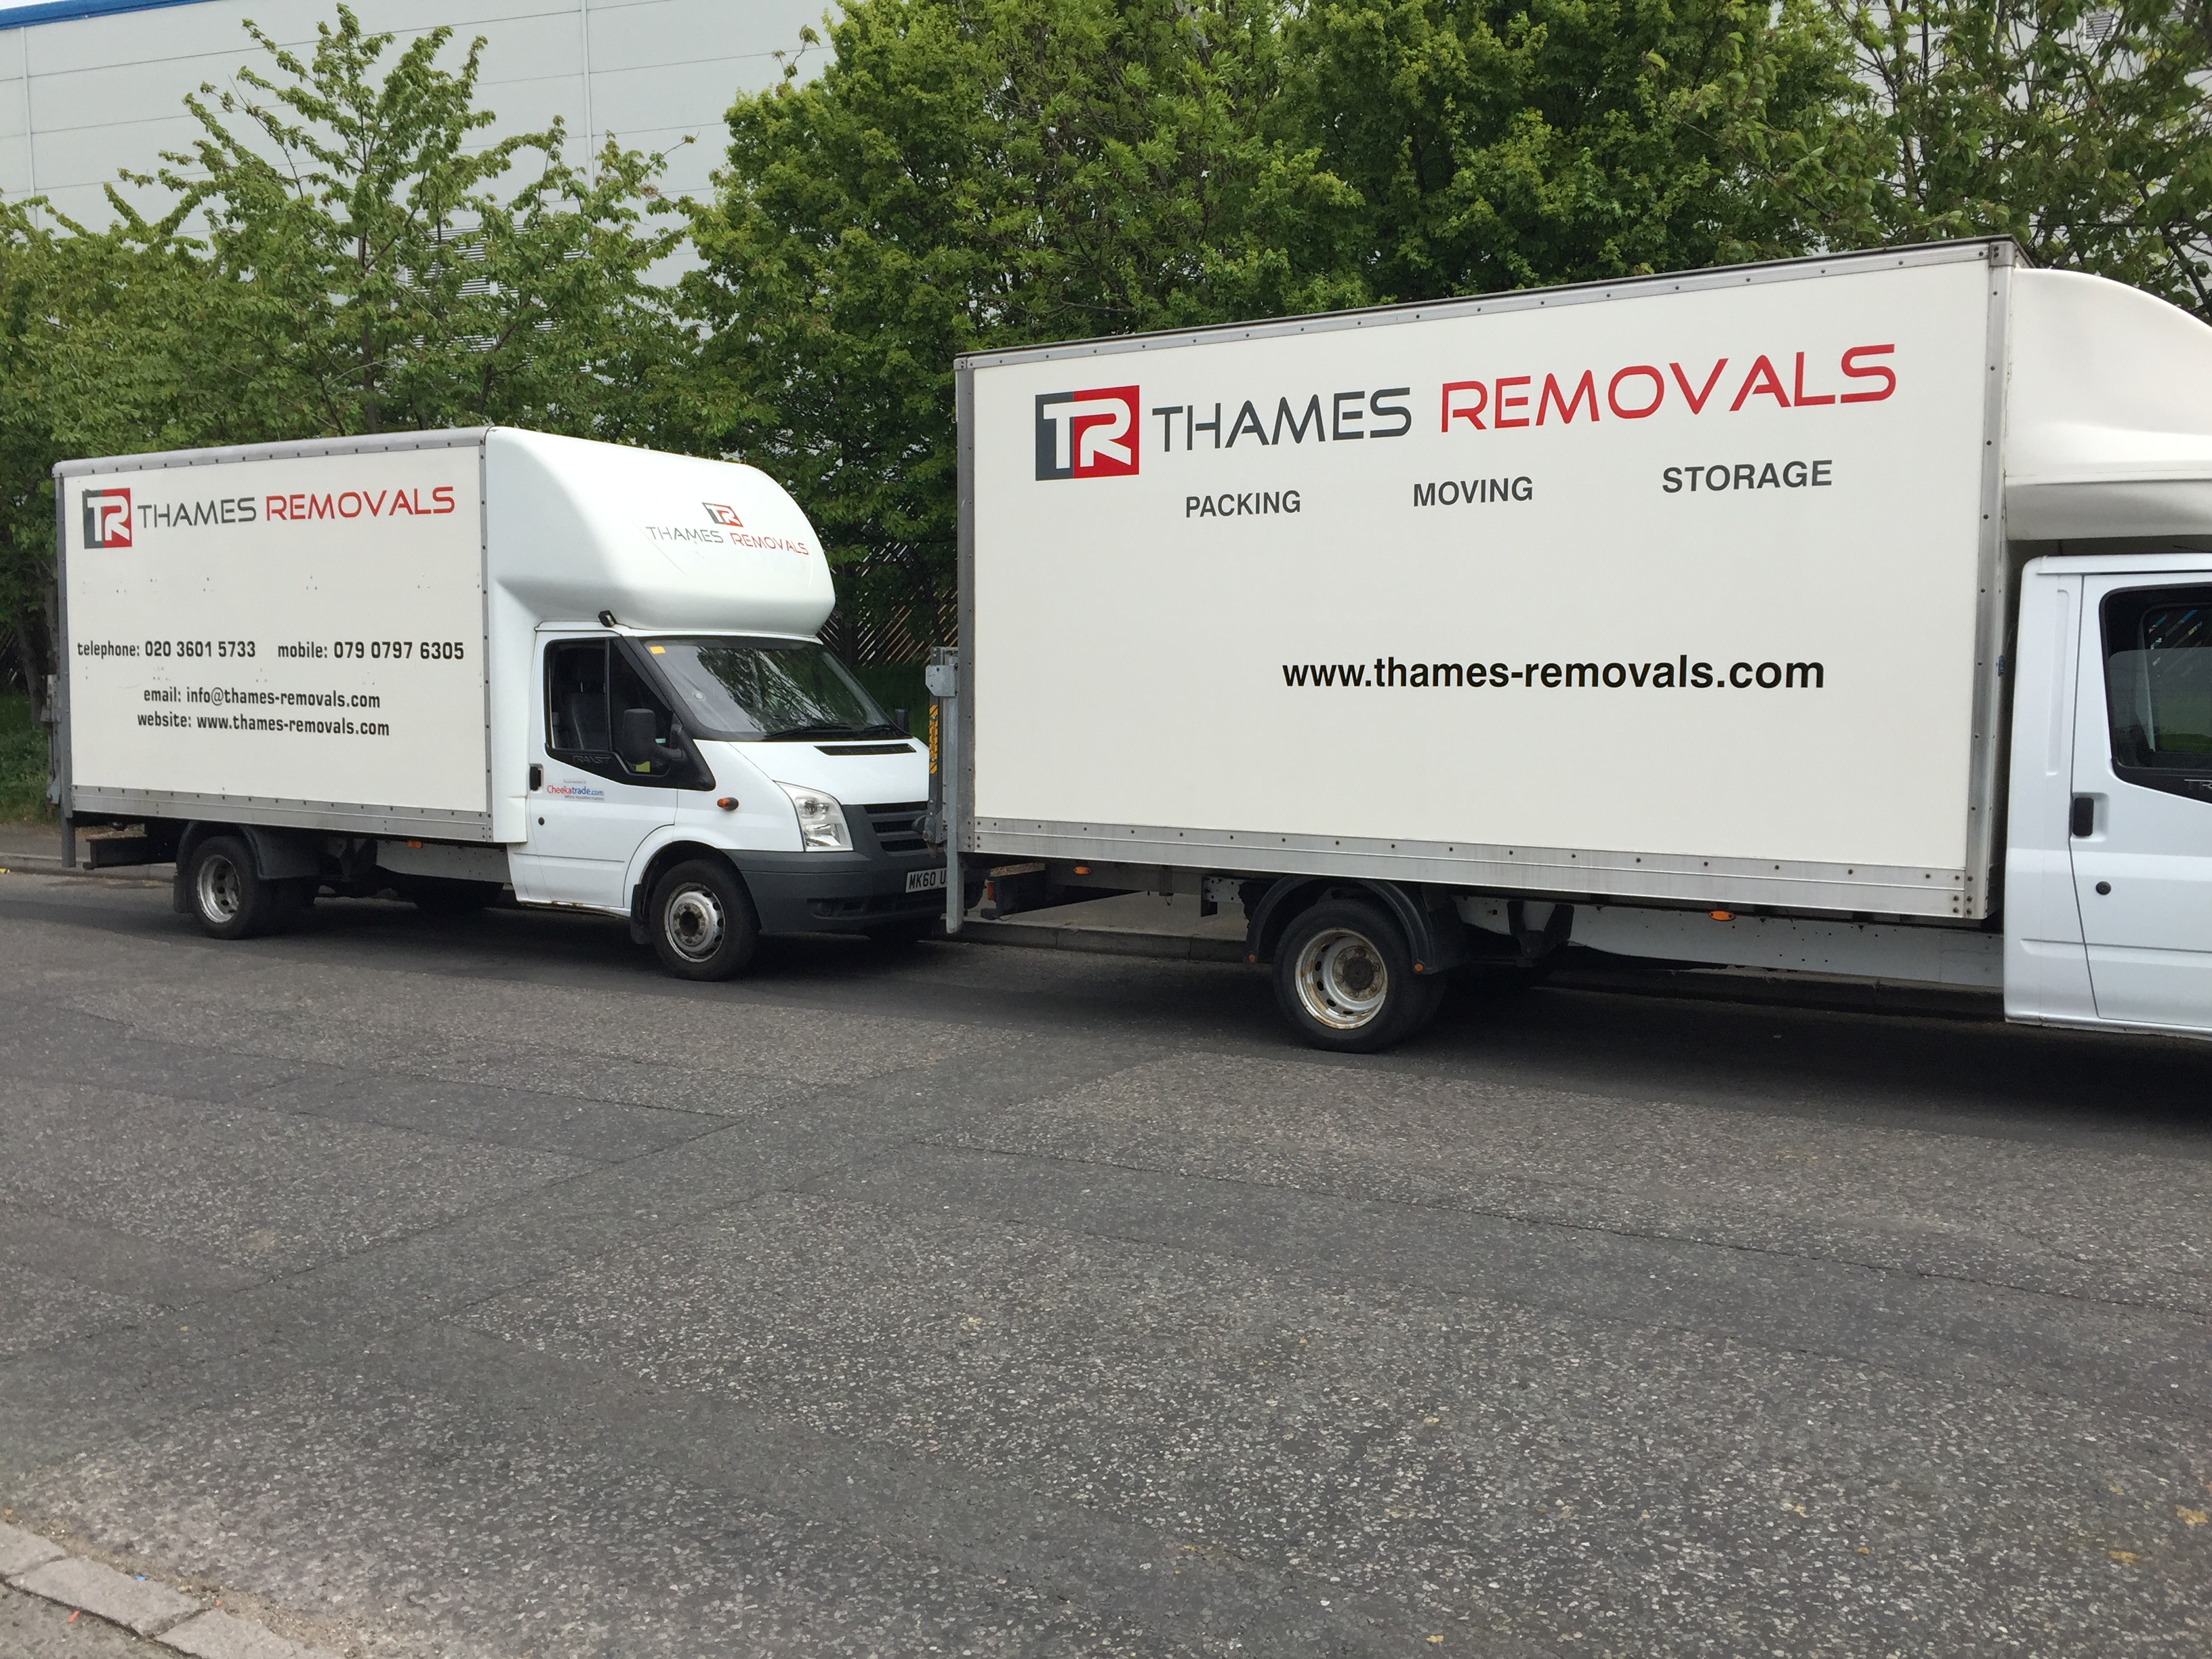 thames-removals-3